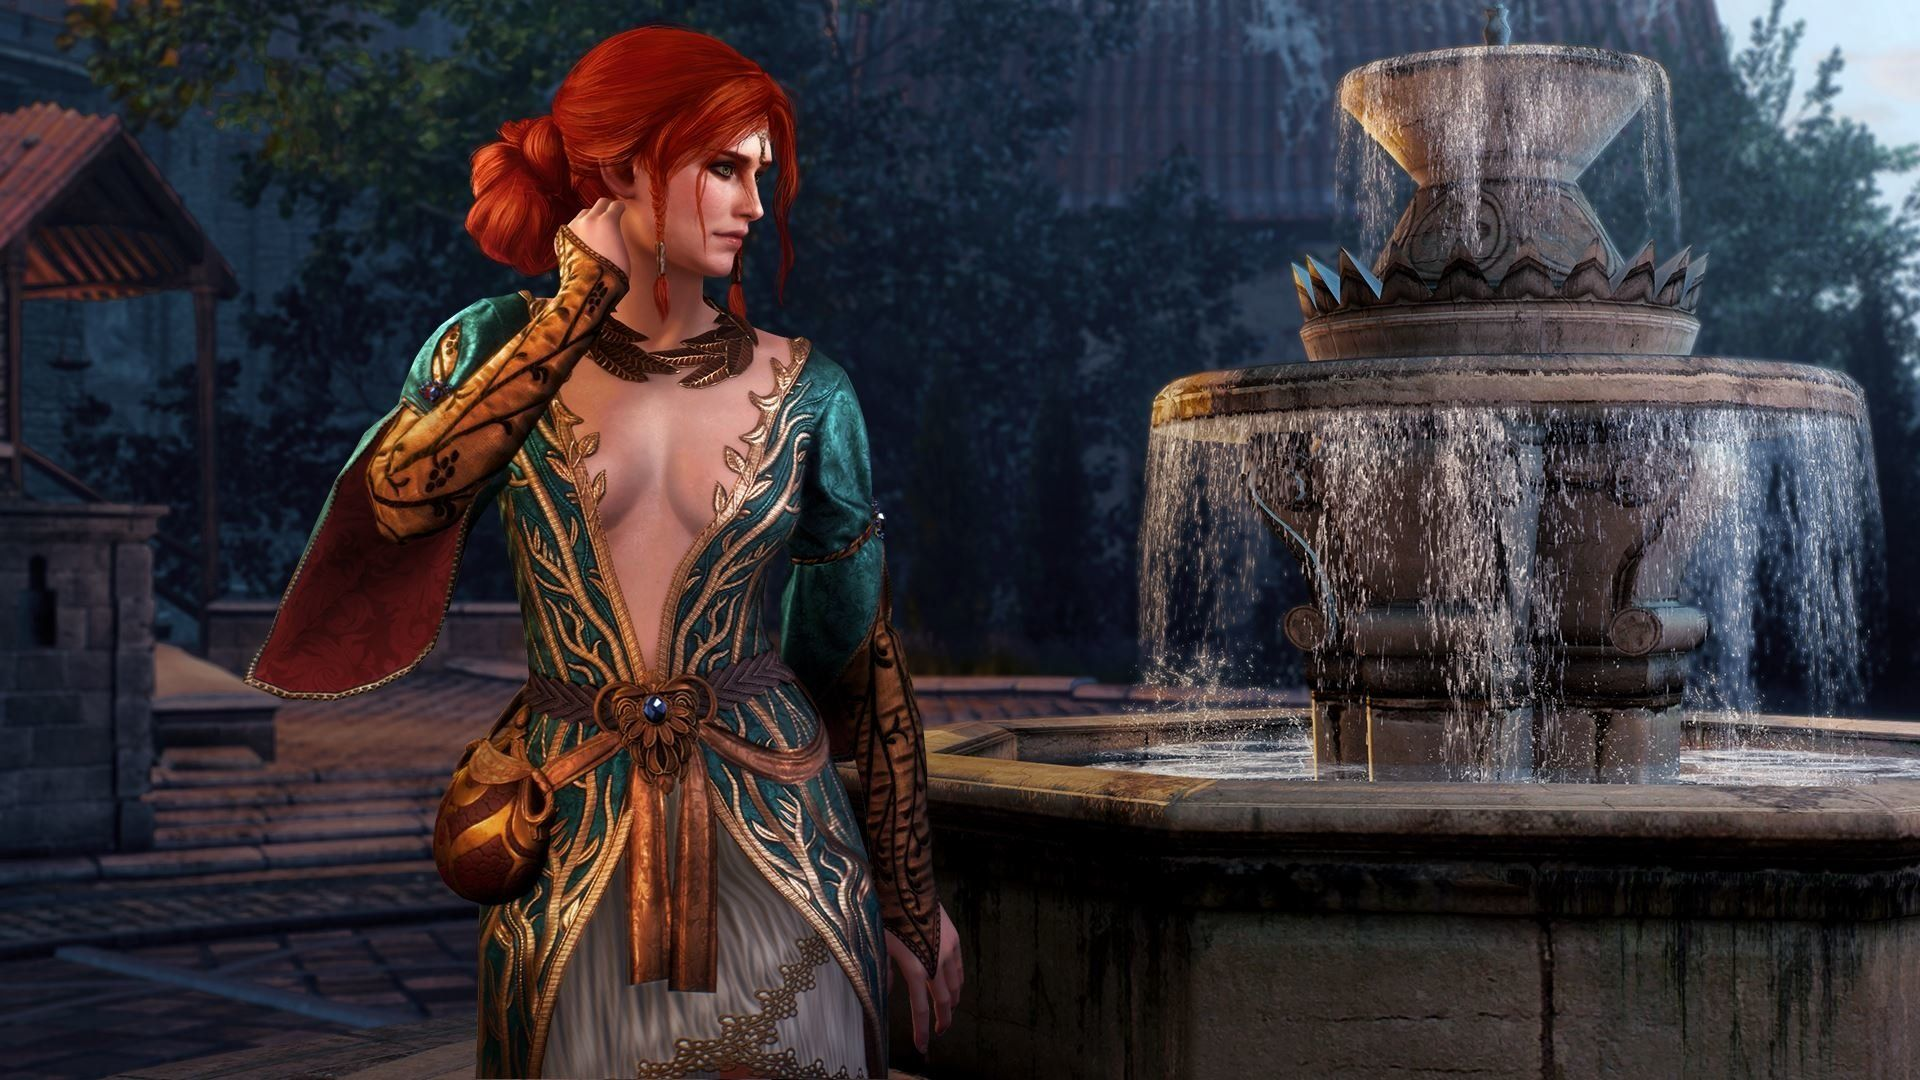 Triss Merigold Hd Wallpapers Backgrounds Wallpaper Witcher 3 The